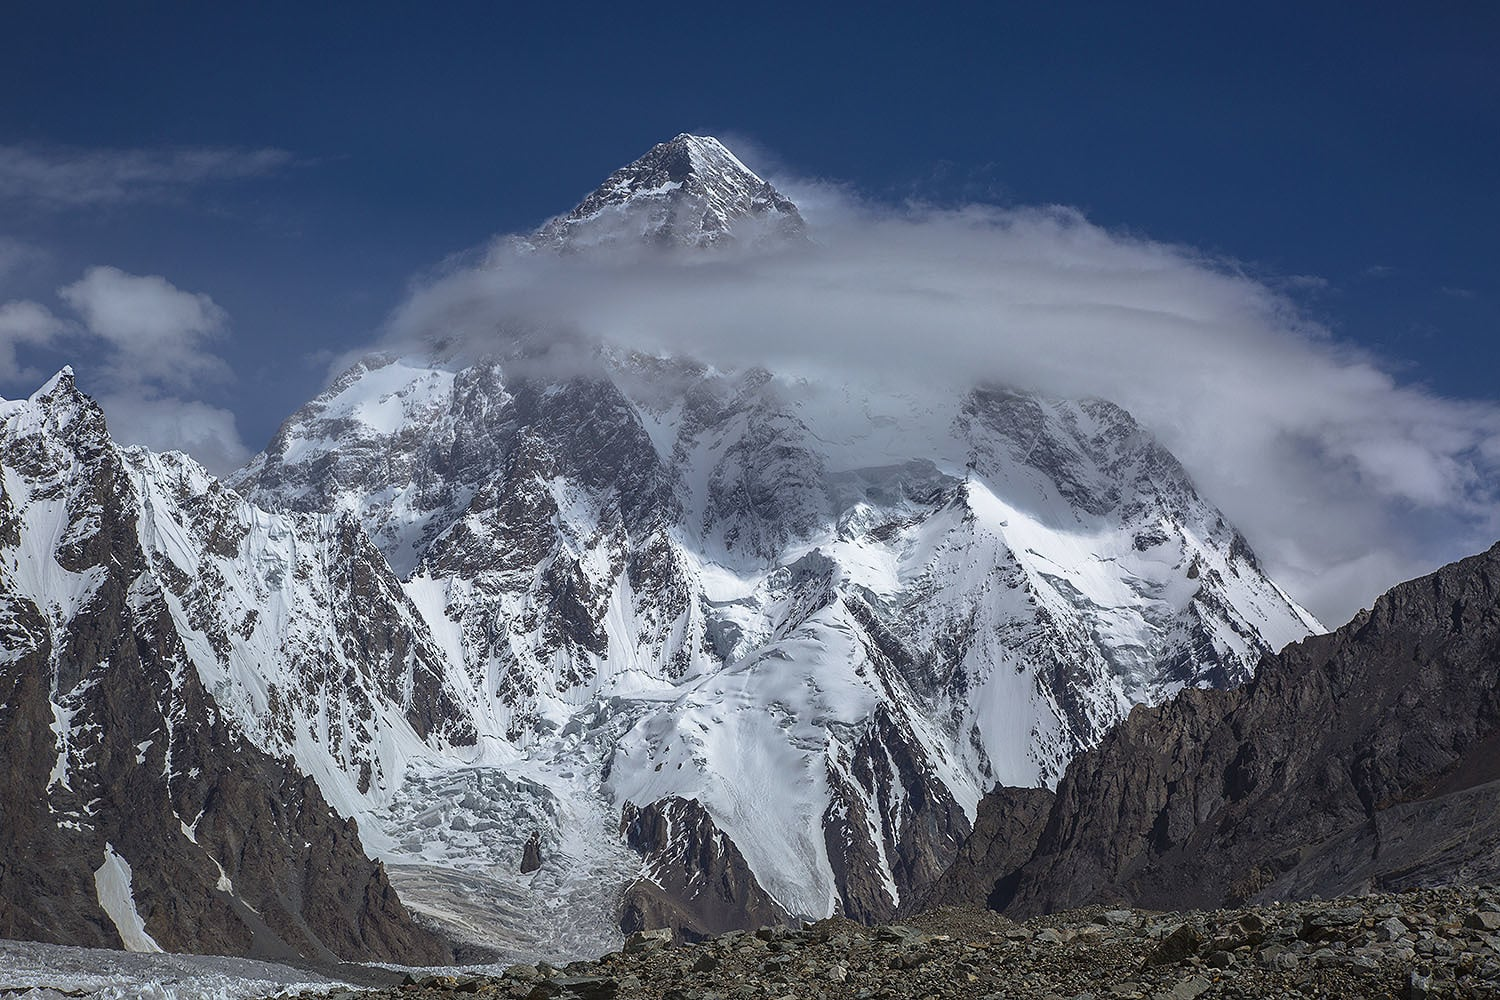 Enroute to the K2 Base Camp. The clouds covered K2 like a halo on an angel.